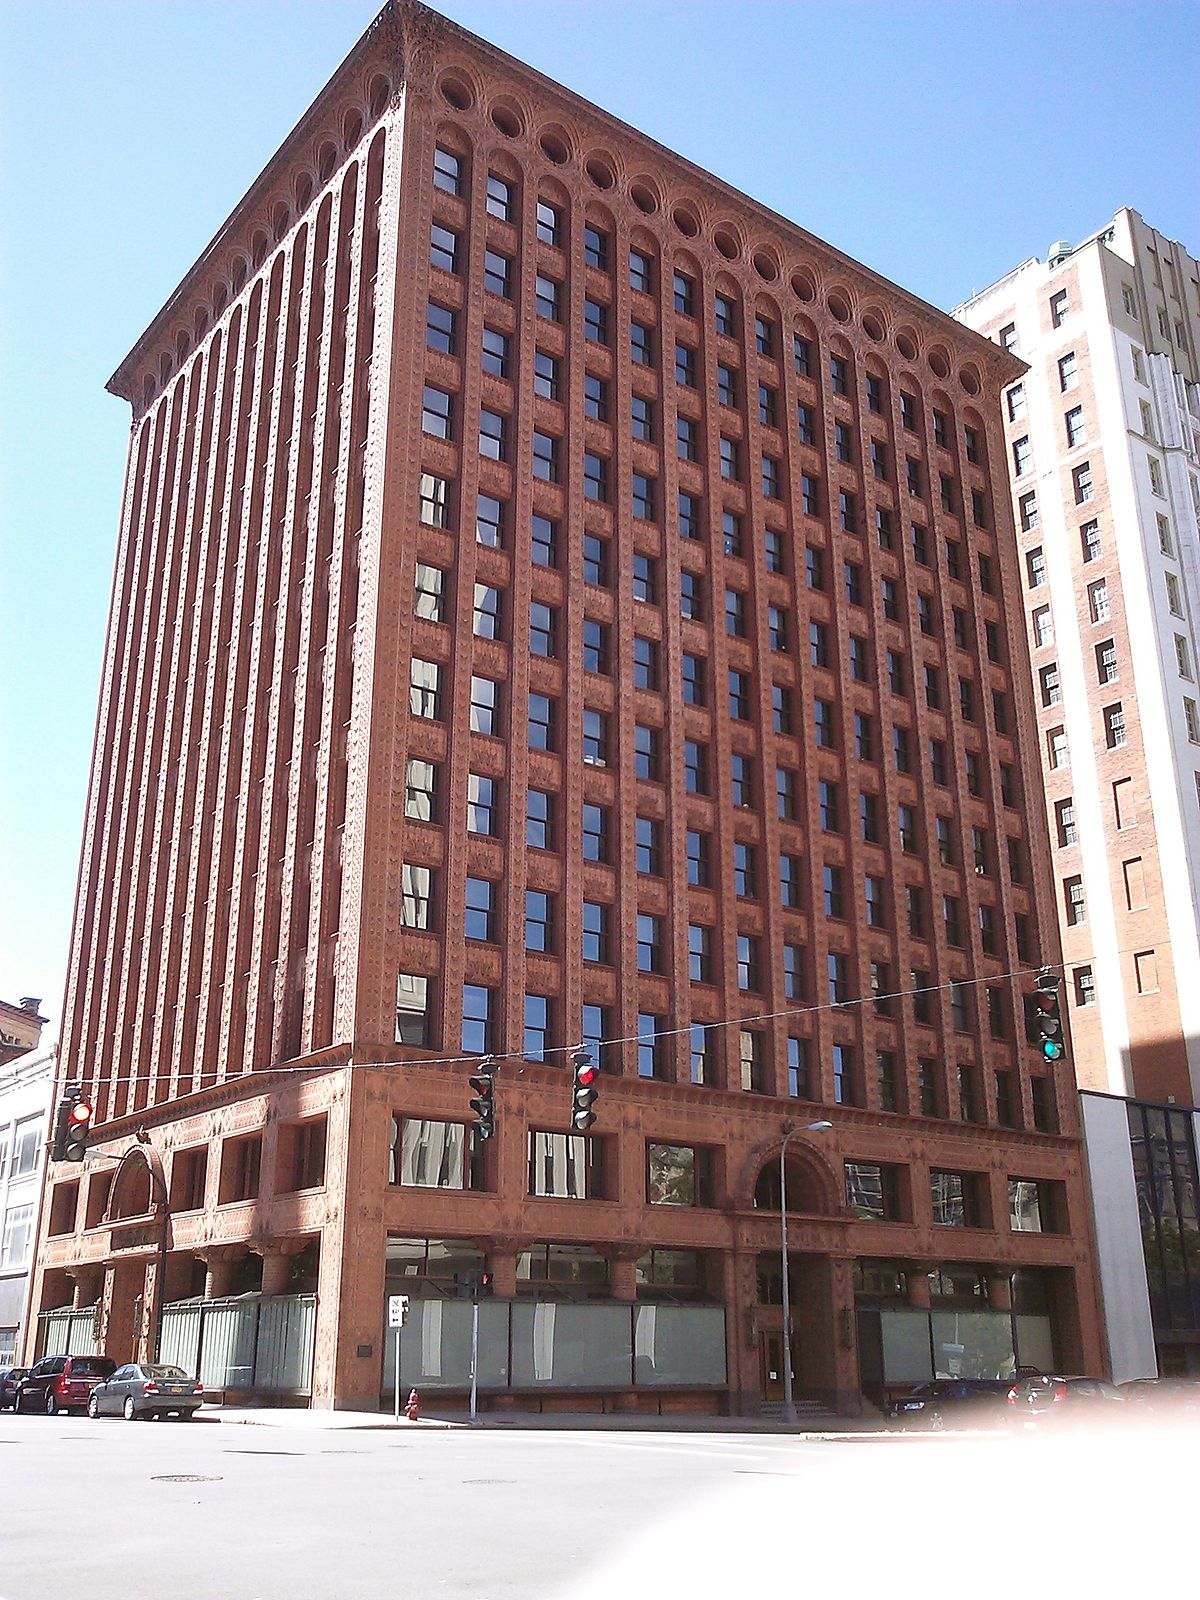 Prudential (Guaranty) Building - Wikipedia